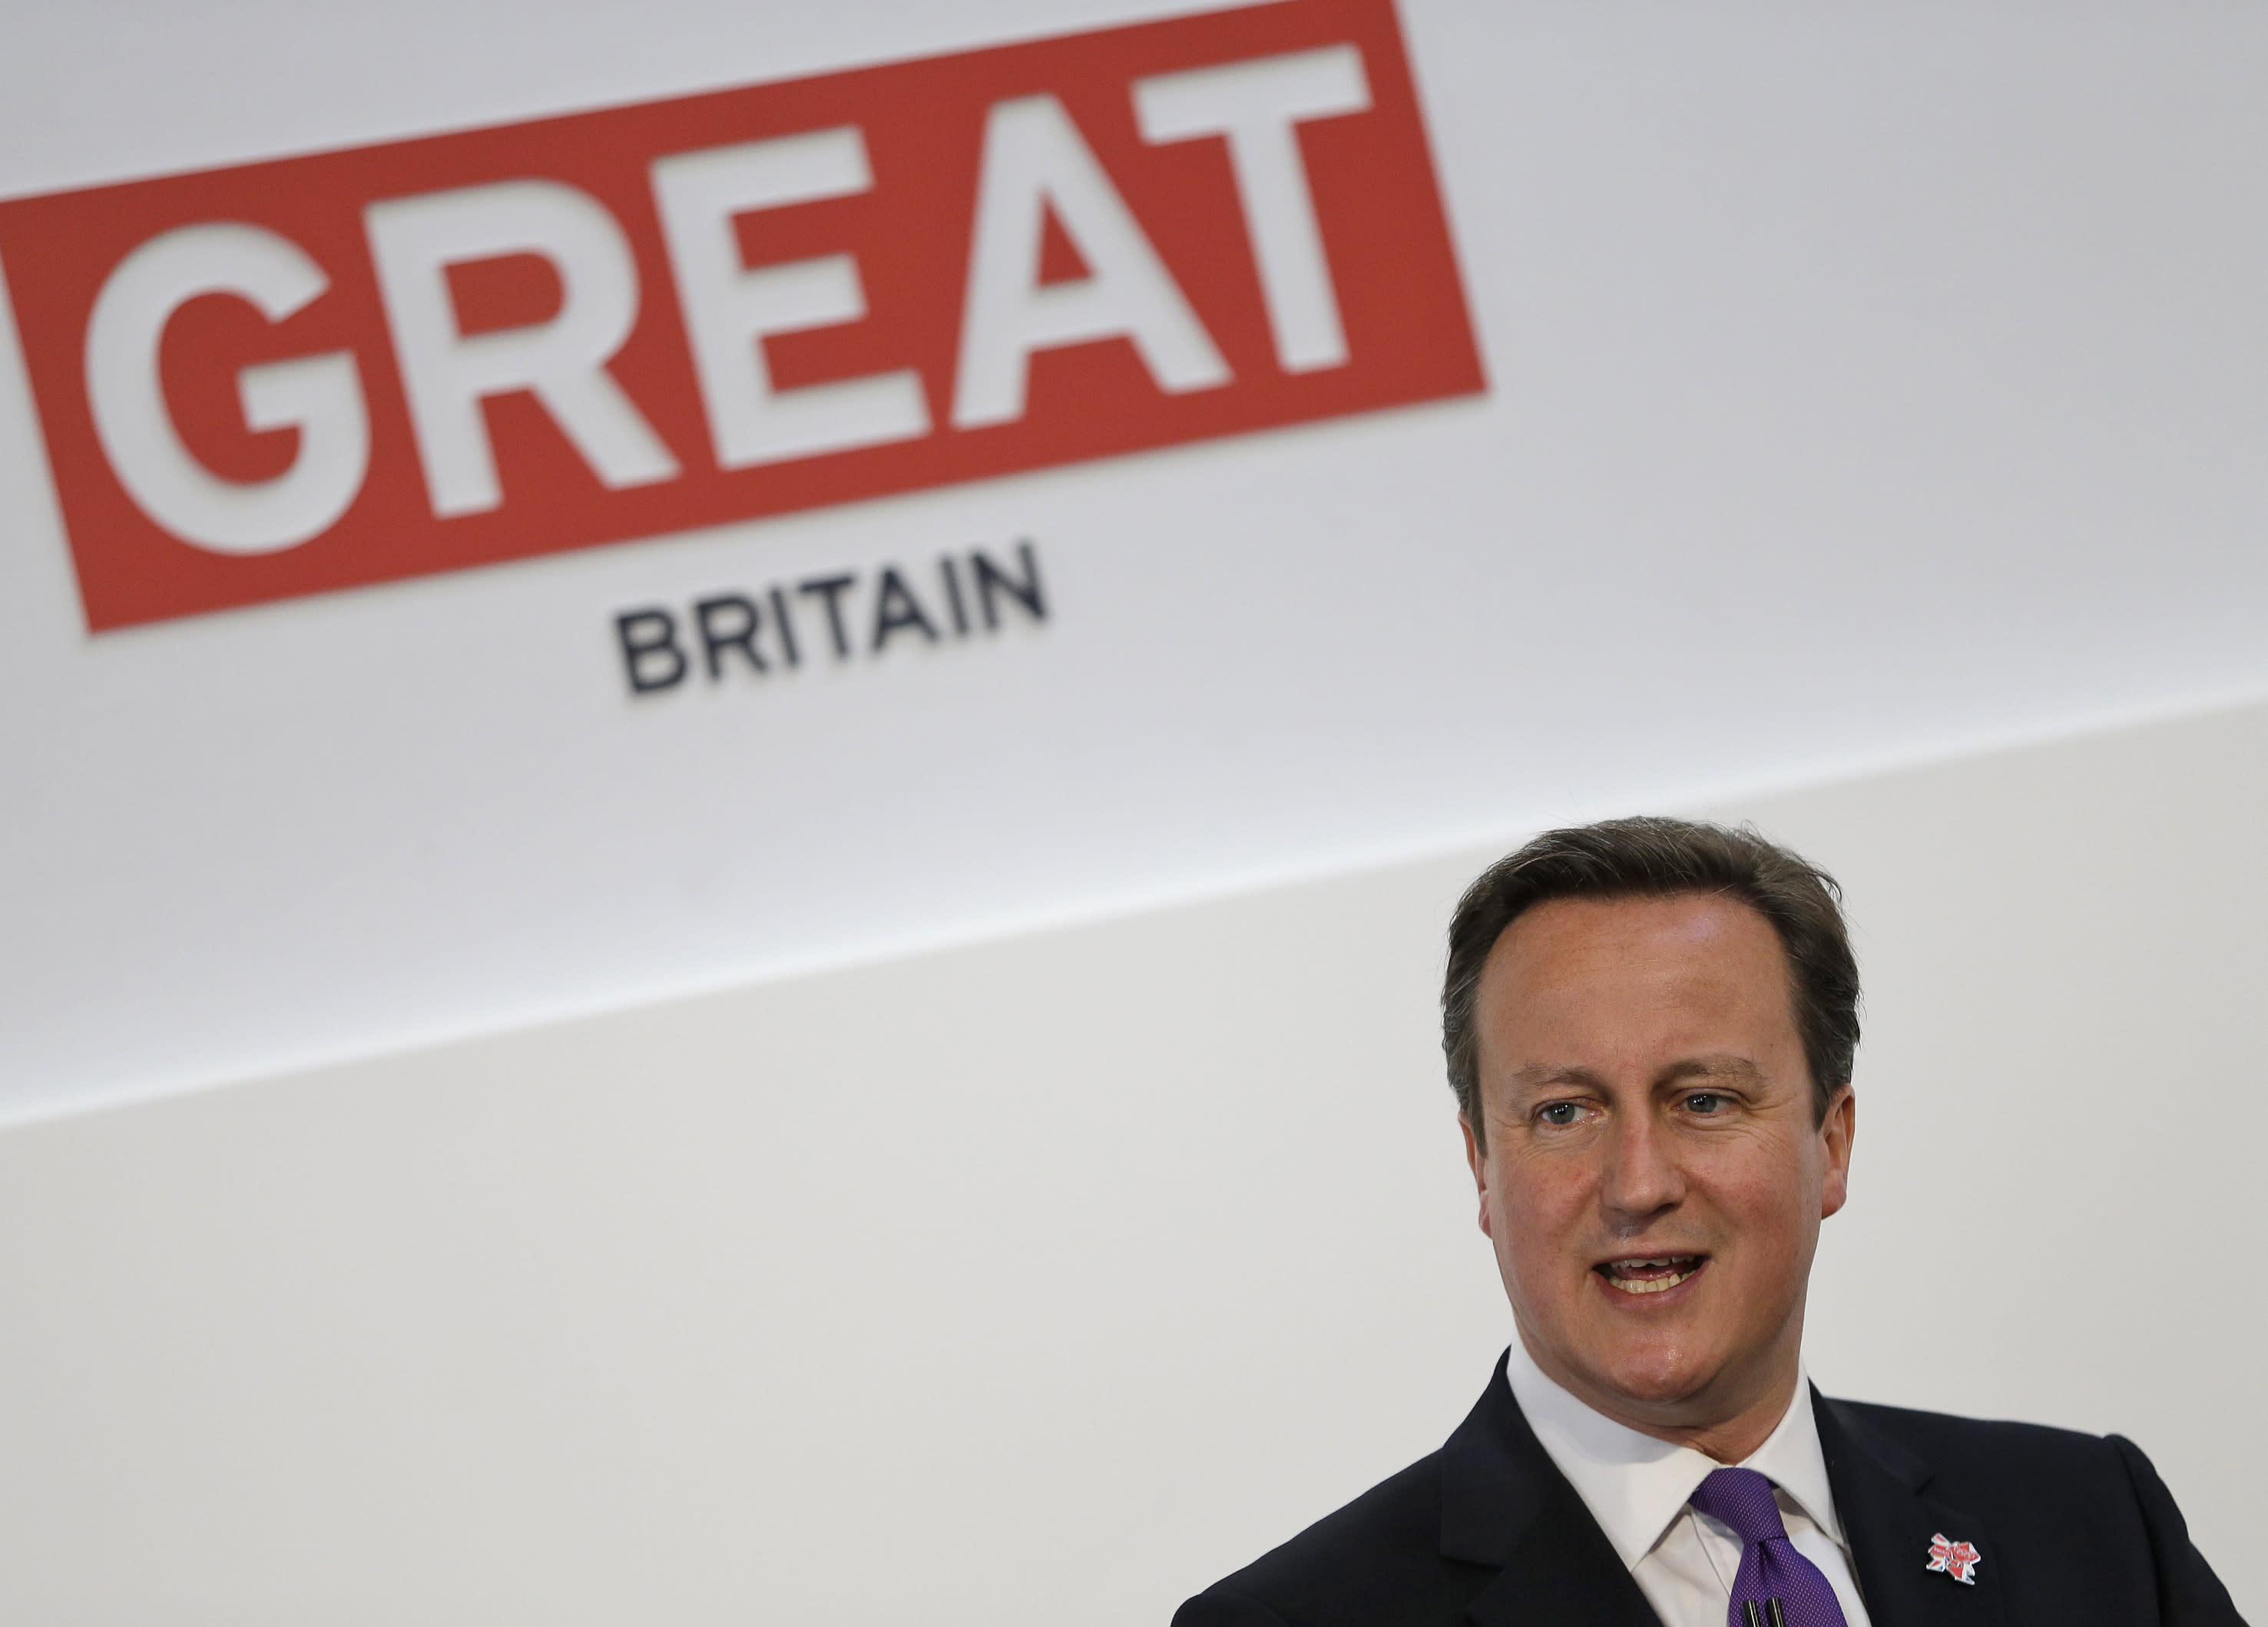 Britain's Prime Minister David Cameron speaks at the British Business Embassy conference in London, Thursday, July 26, 2012. The British government is trying to drum up business, a day after figures showed the country's economy is in a deeper recession than previously thought. On the eve of the start of the Olympic Games, the government has gathered around 4,000 business leaders and international policymakers in London as it attempts to clinch over 1 billion pounds worth of deals and projects this summer. (AP Photo/Alastair Grant, Pool)